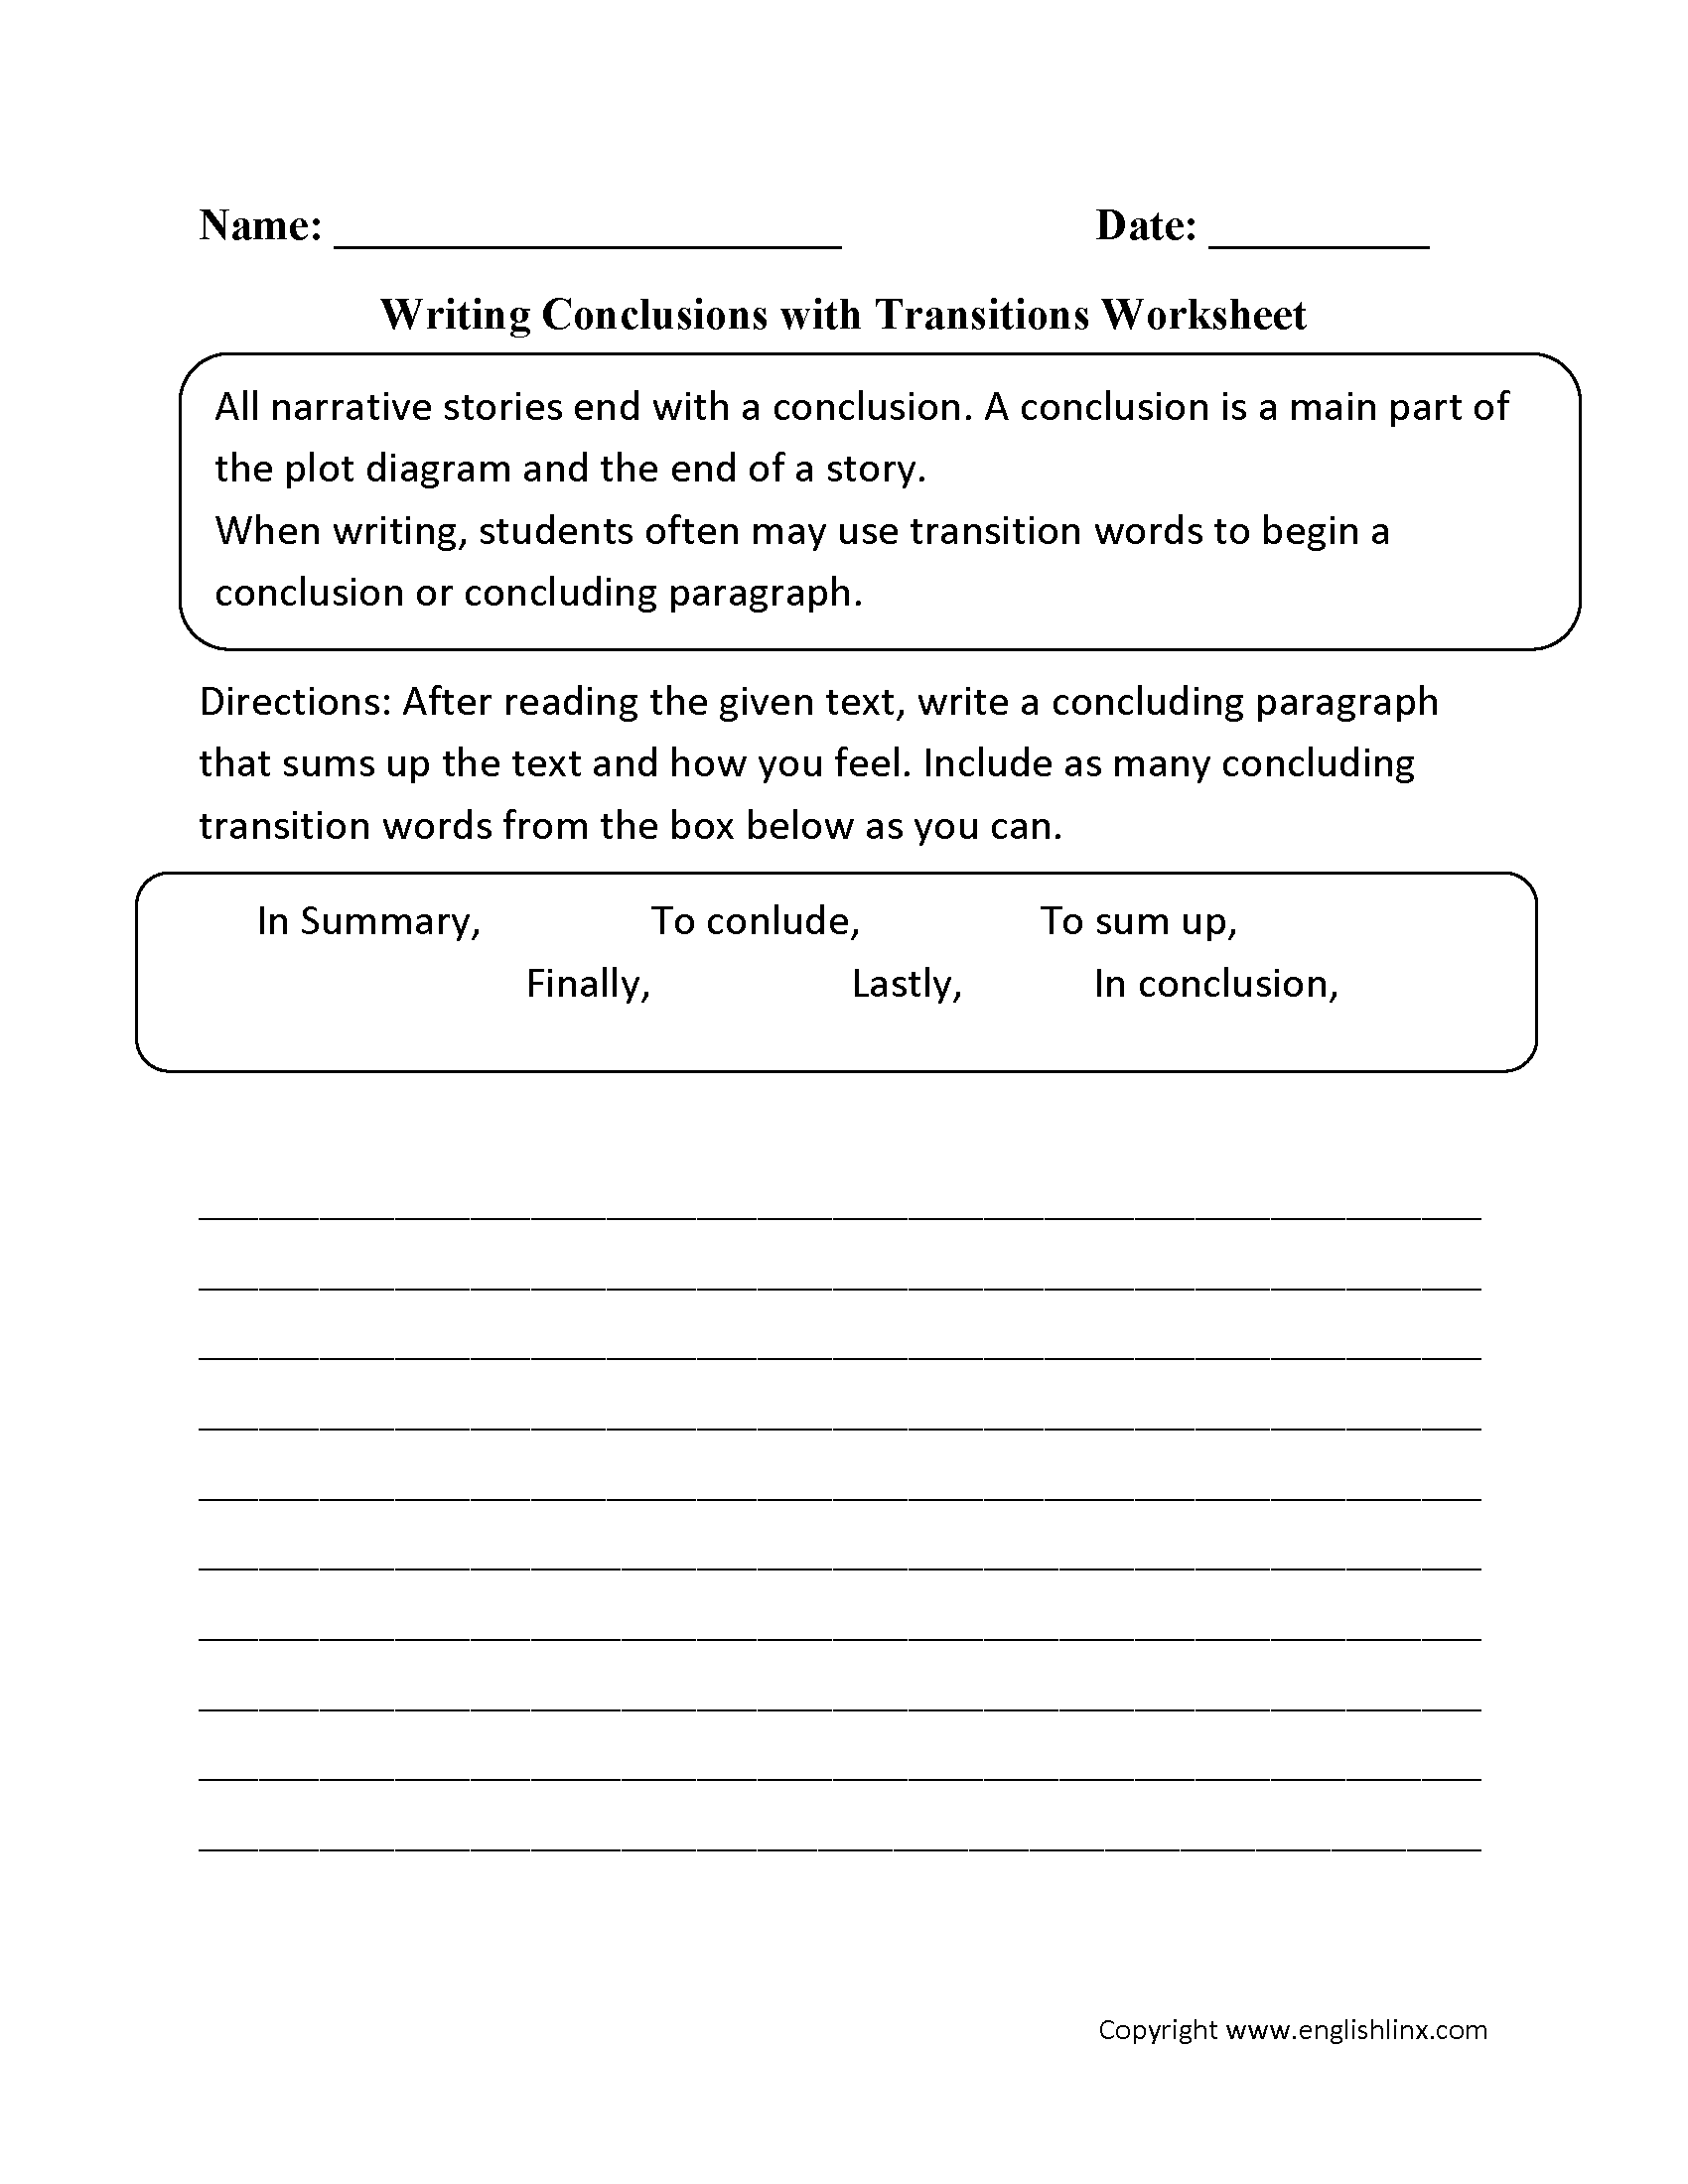 medium resolution of Writing Conclusions with Transitions Worksheets   Reading worksheets